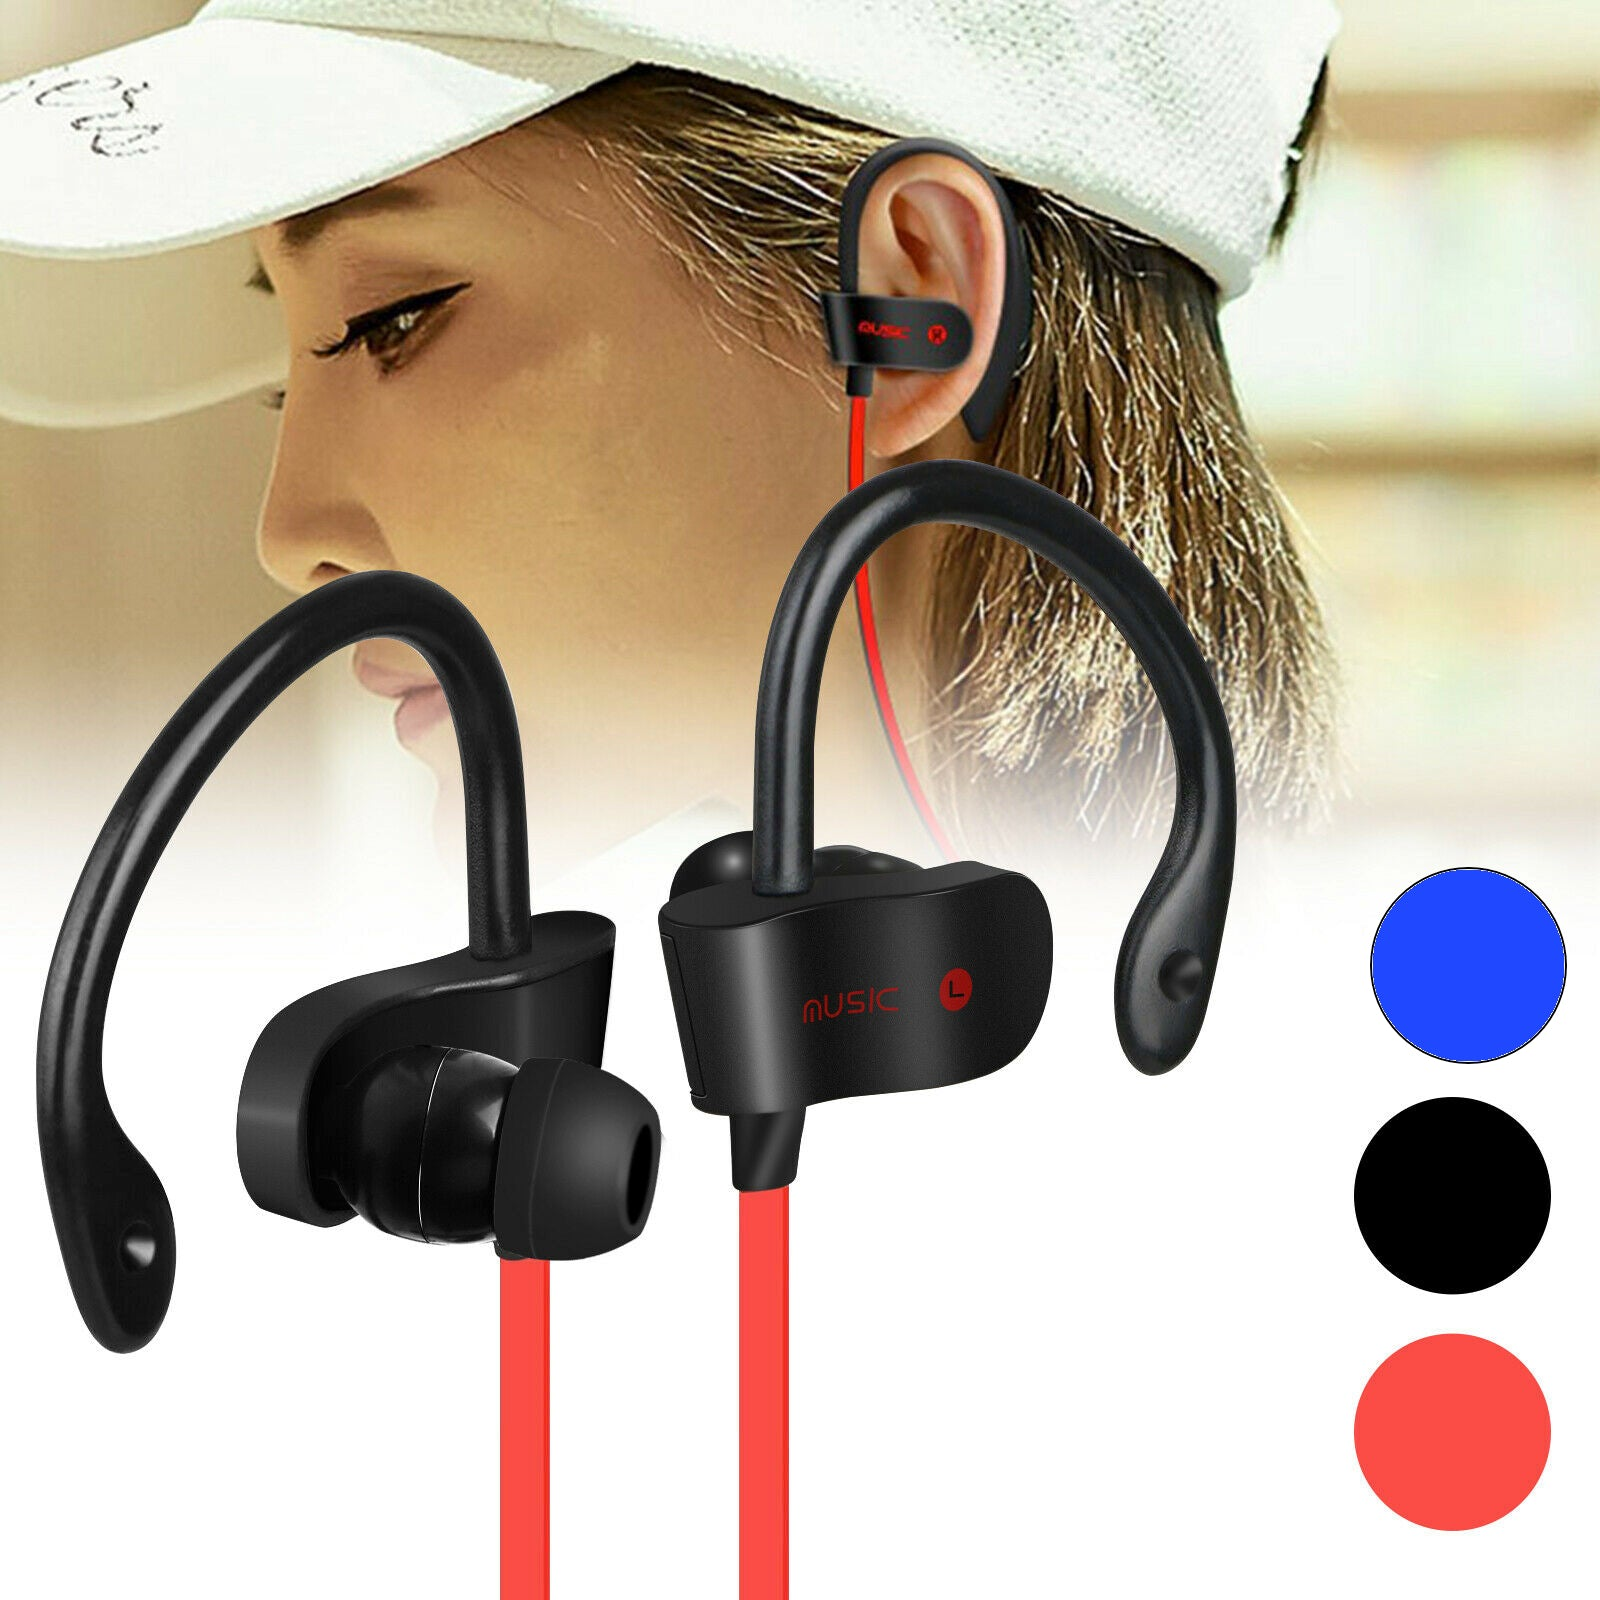 Sweat-Proof Noise-Canceling Wireless Bluetooth Earbuds - Assorted Colors